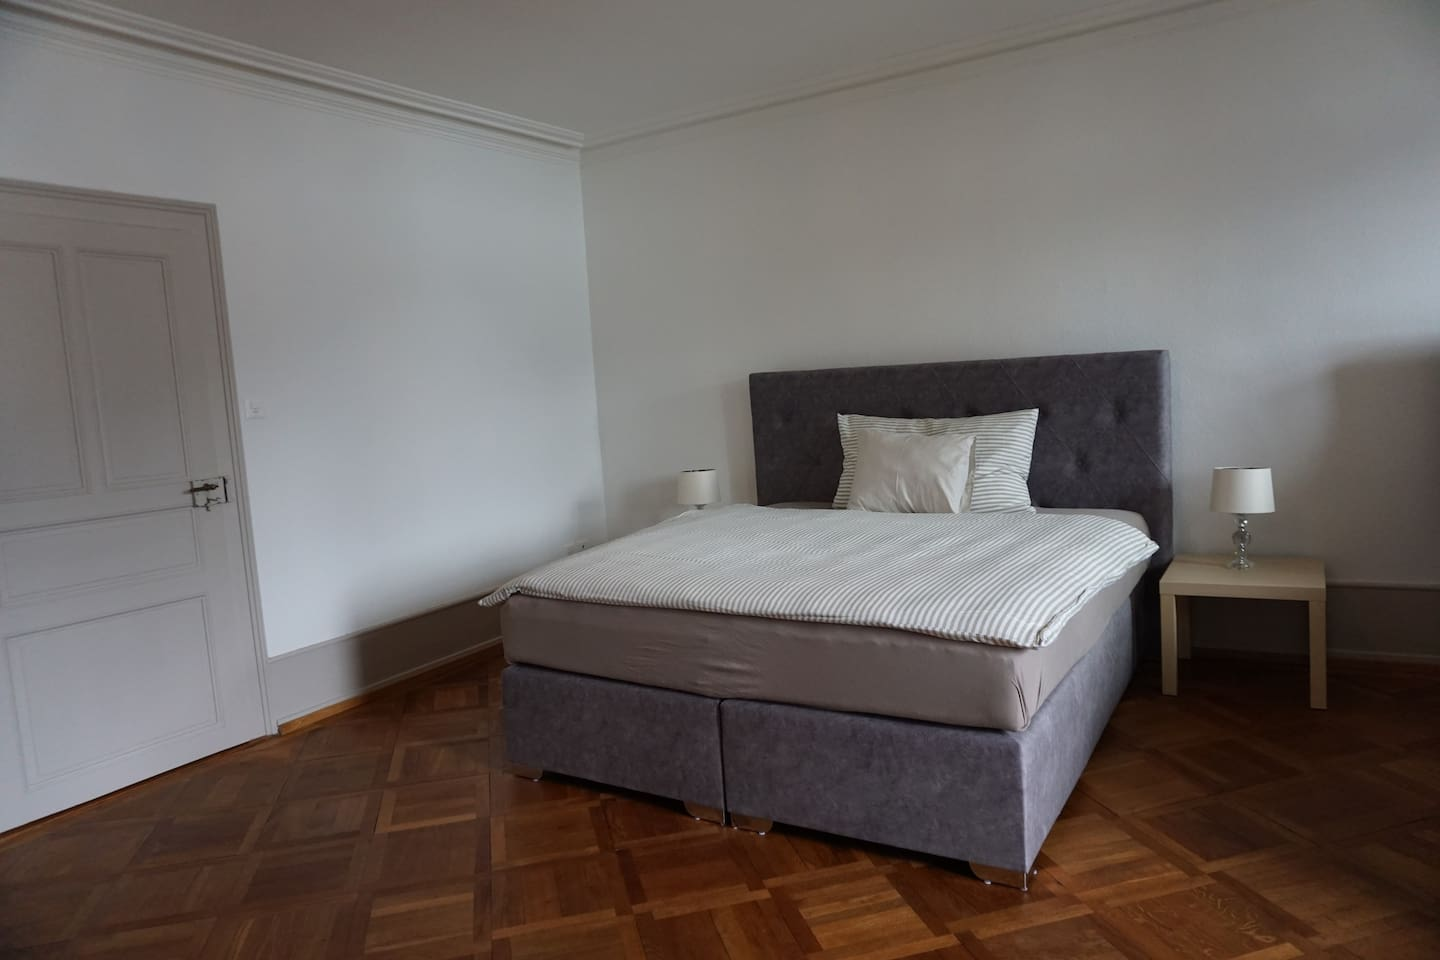 The double room no. 204